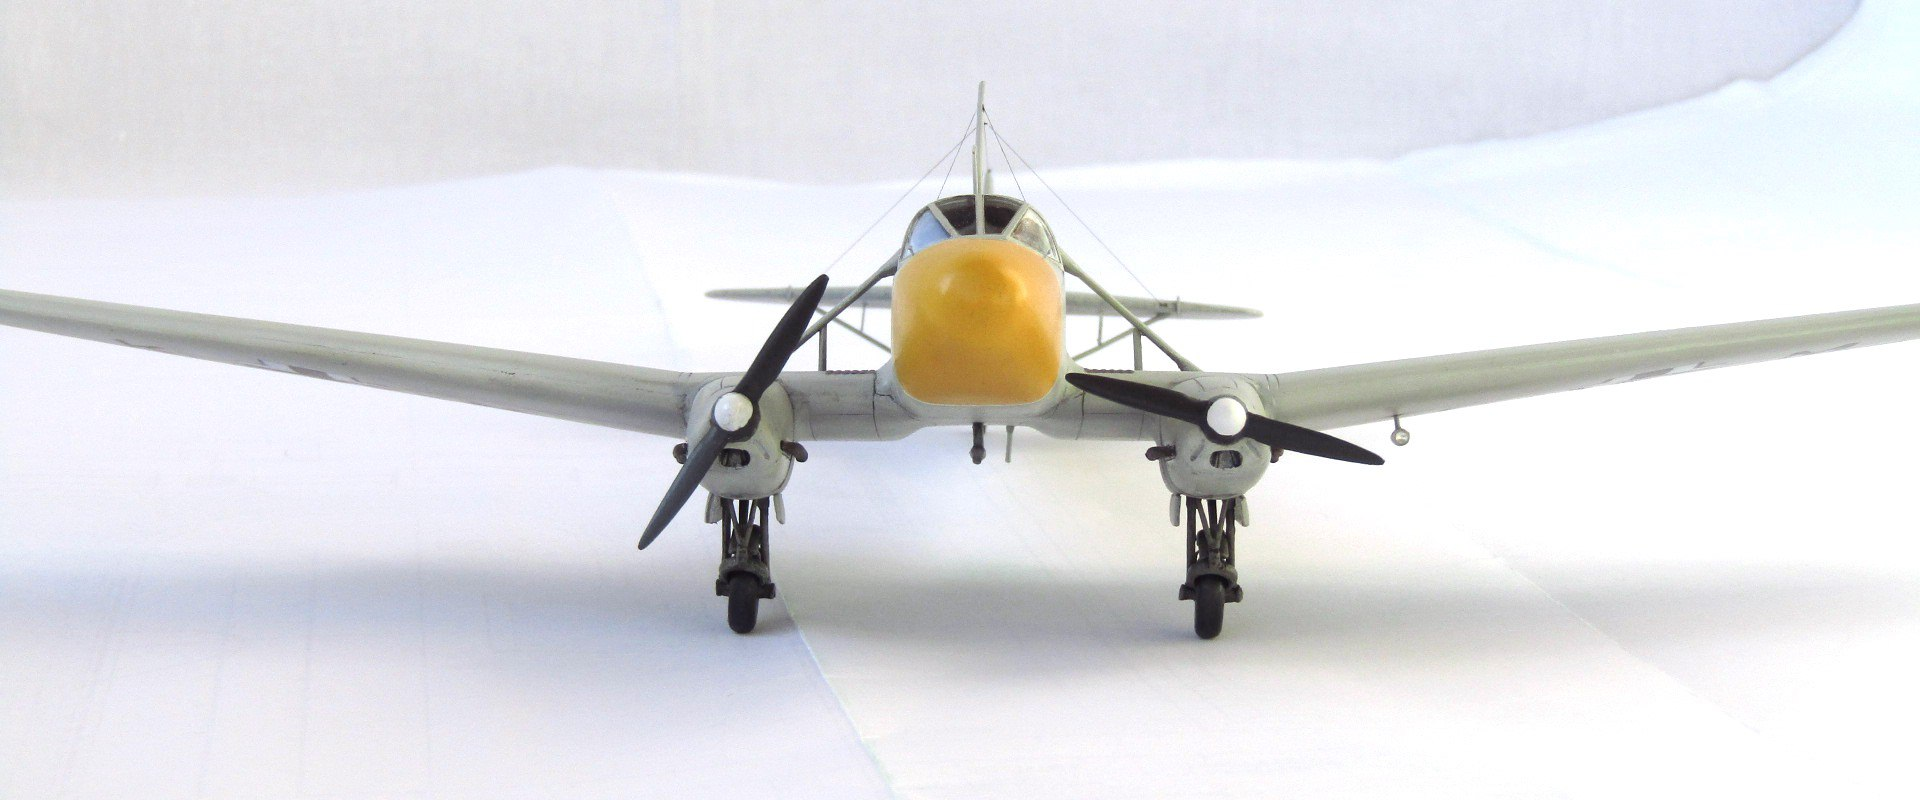 FW - 58C weihe 1/72 (Special Hobby) R01FT7r90Vk